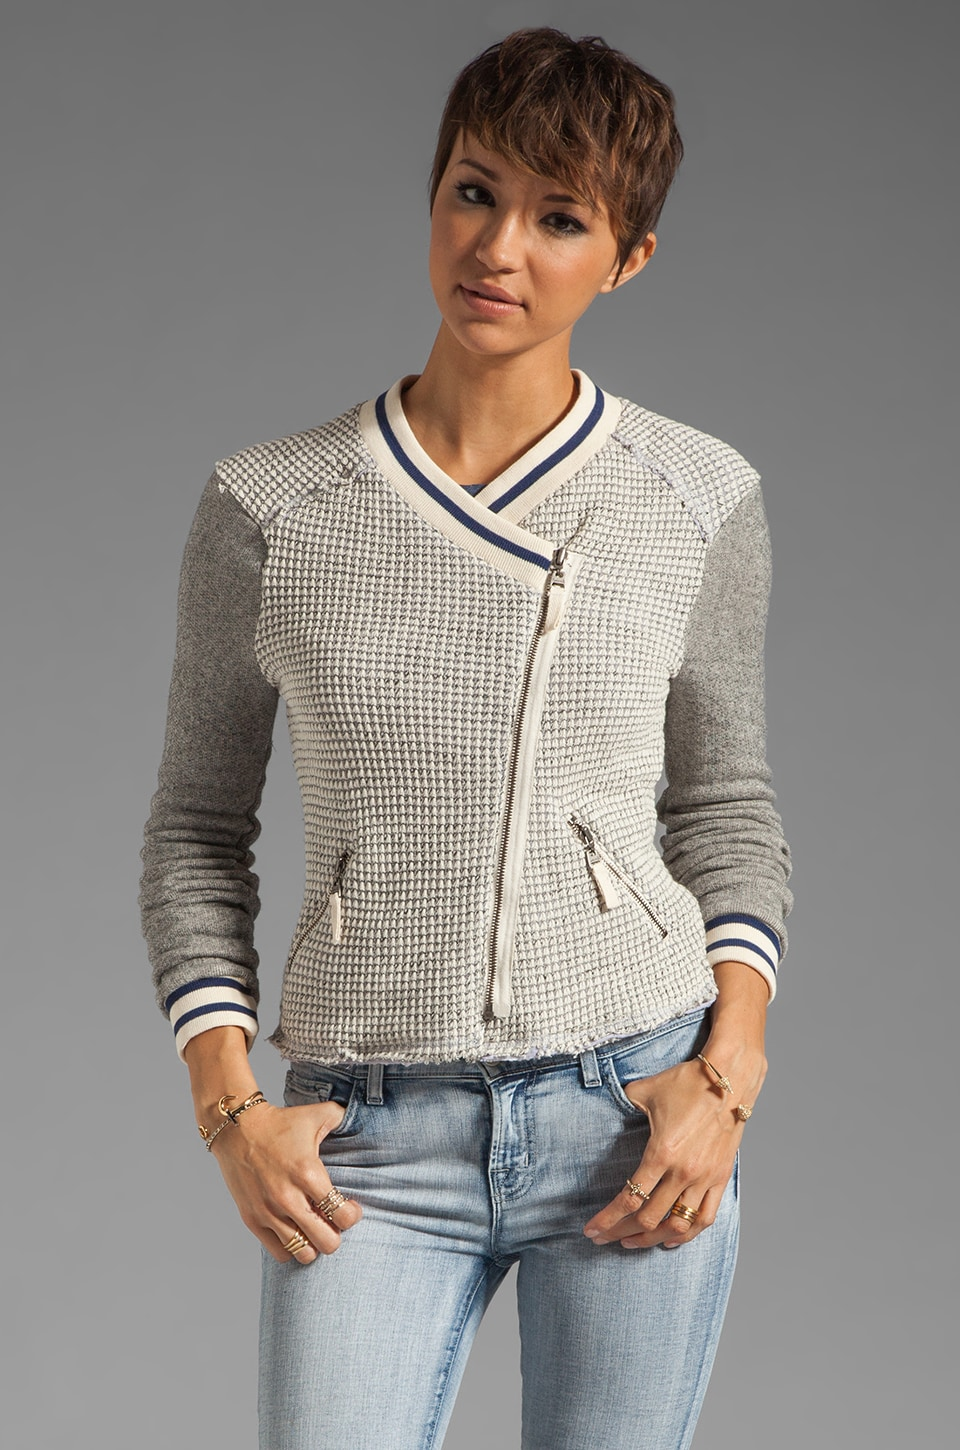 Splendid Rydell Boucle Jacket in Natural/Heather Grey